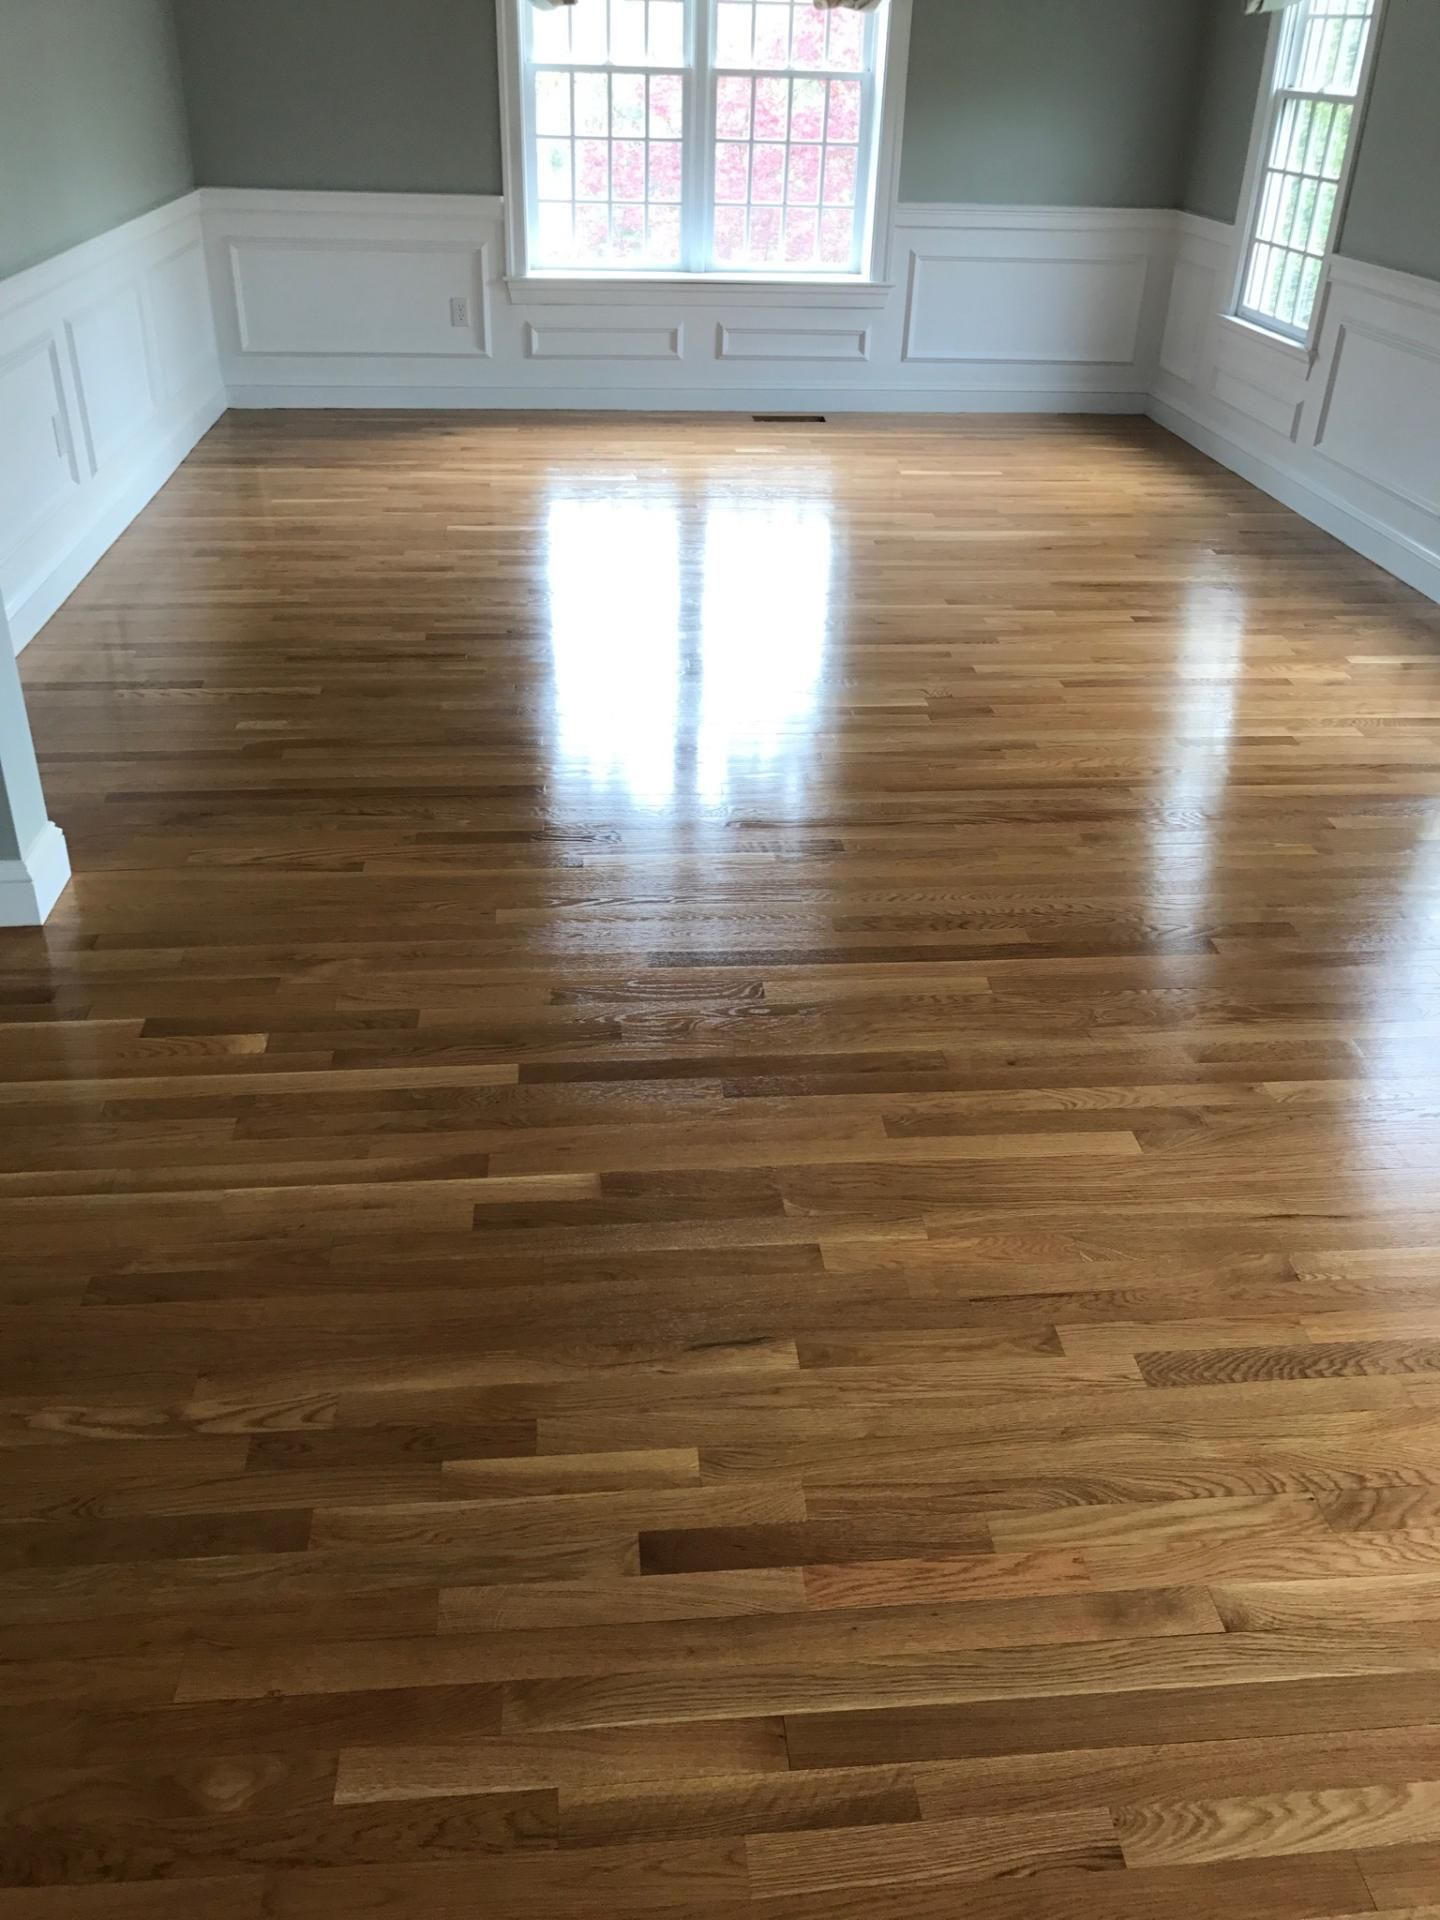 We Resanded Natural White Oak Hardwood Floors And Applied An Oil Based Finish In The Kitchen Formal Oak Hardwood Flooring Flooring White Oak Hardwood Floors